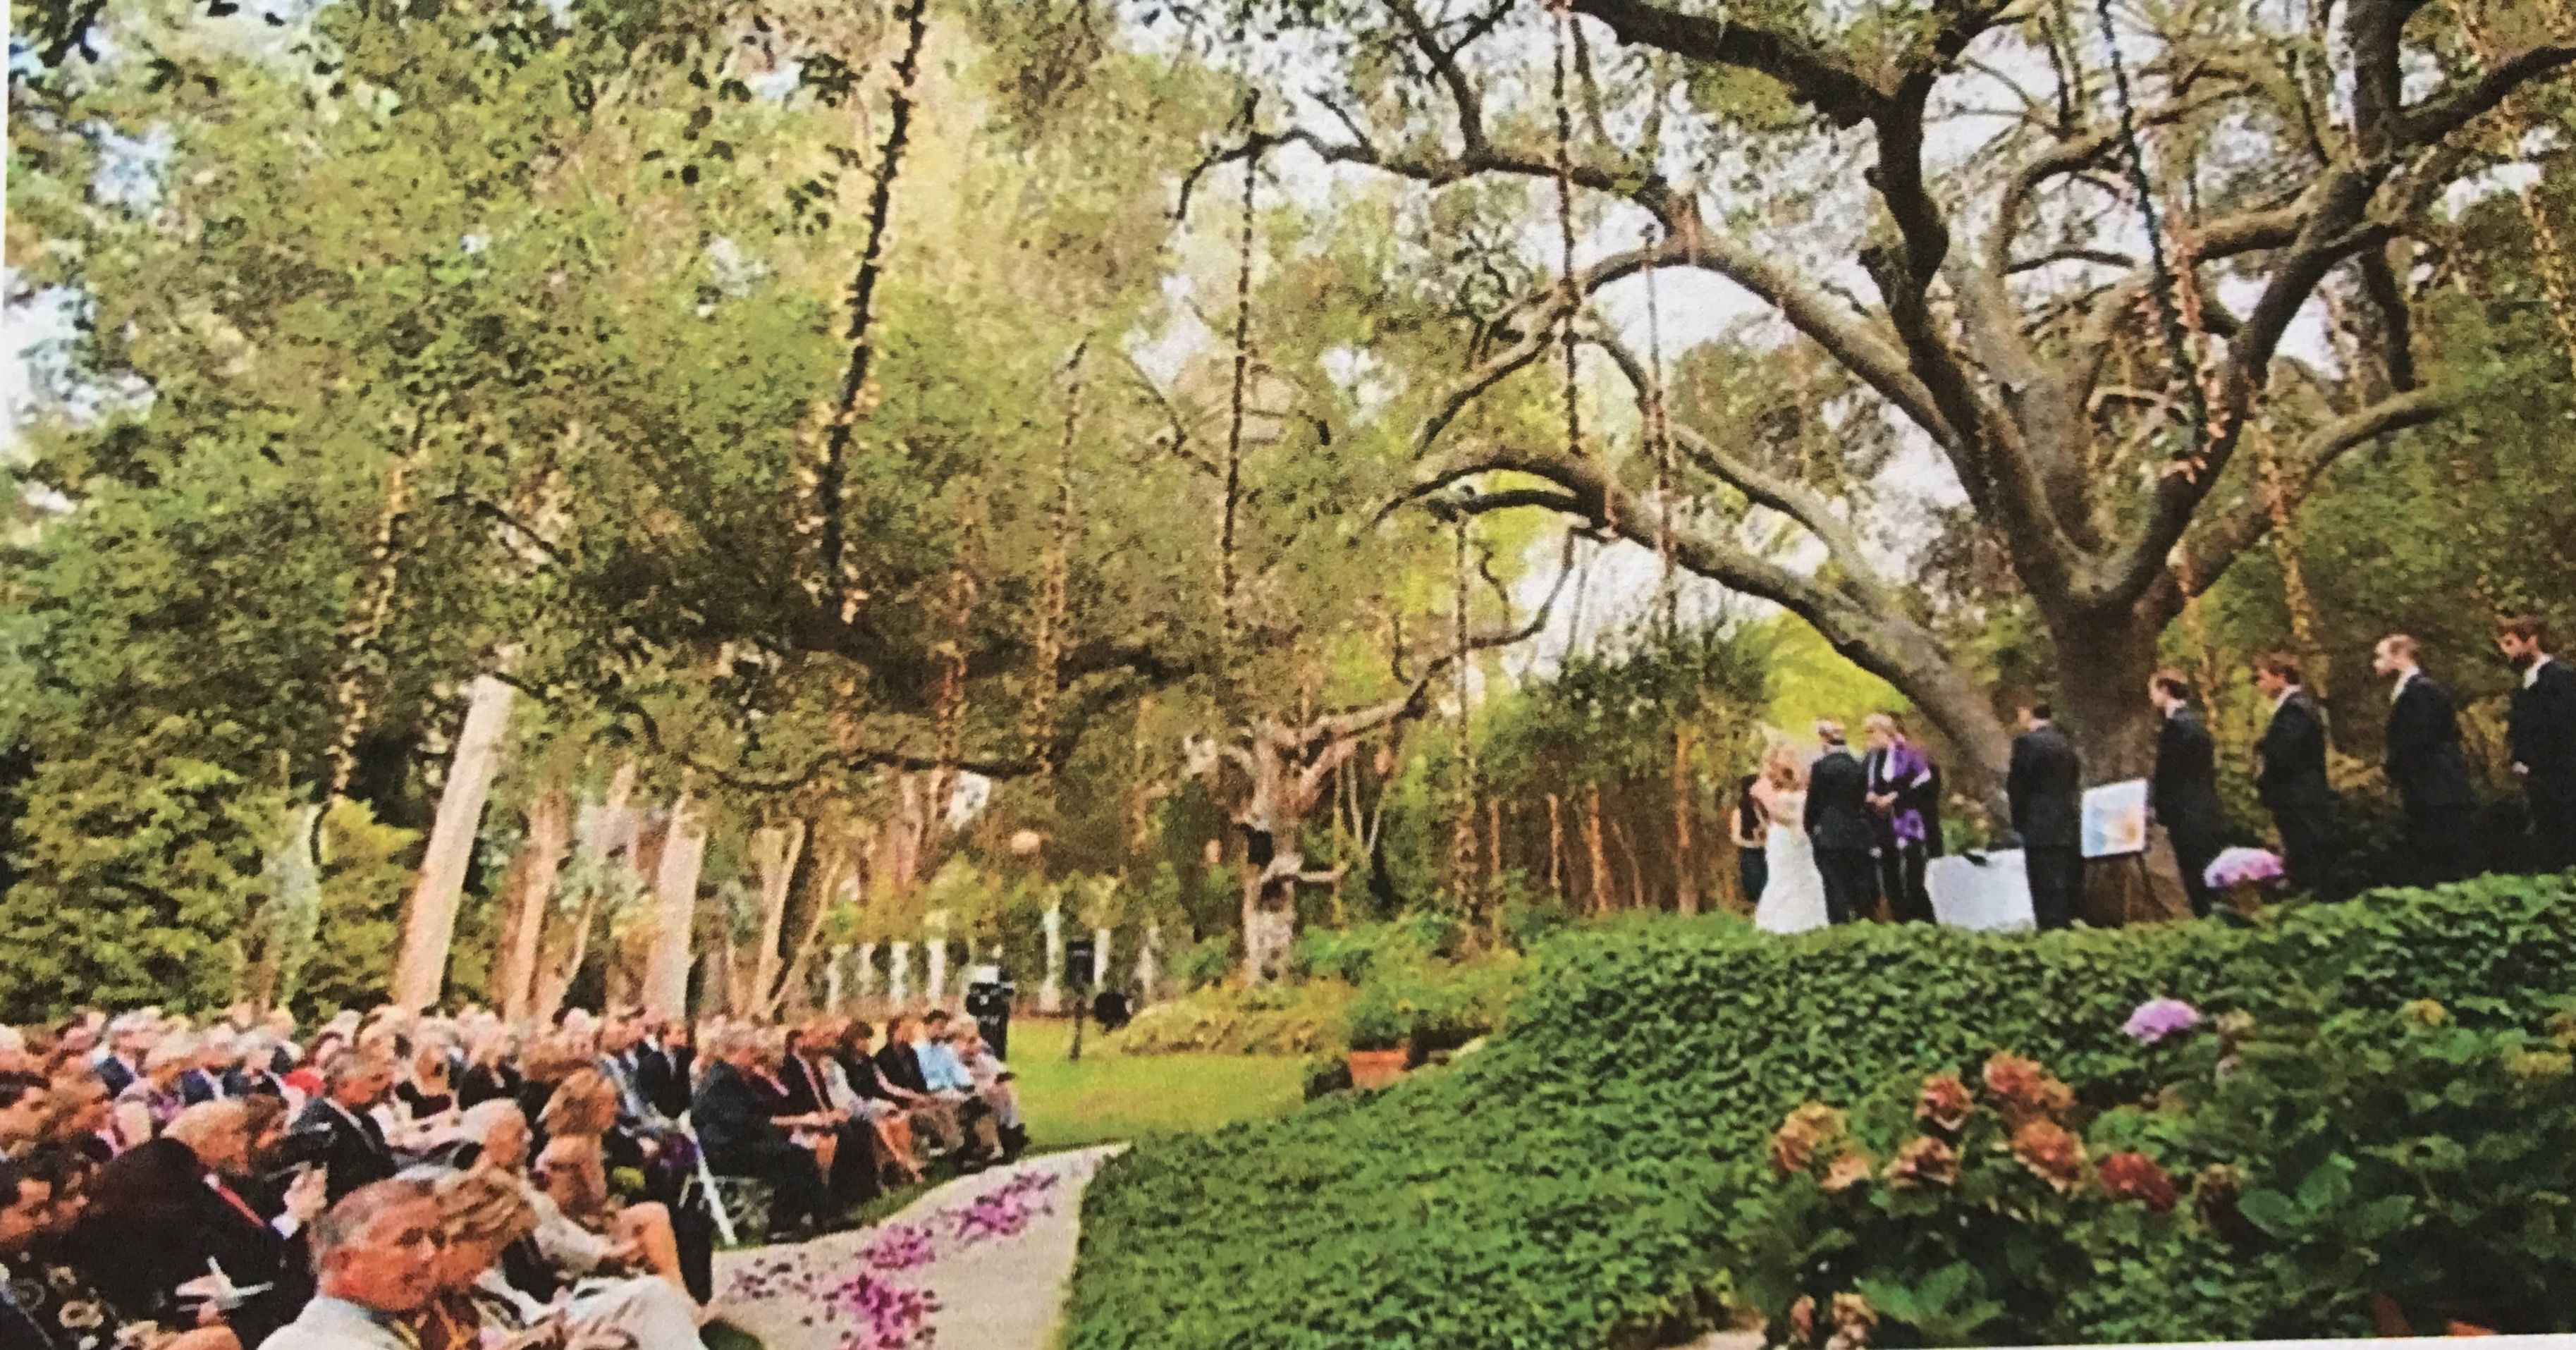 Pin by Anseth Richards on Ceremonies Calamigos ranch